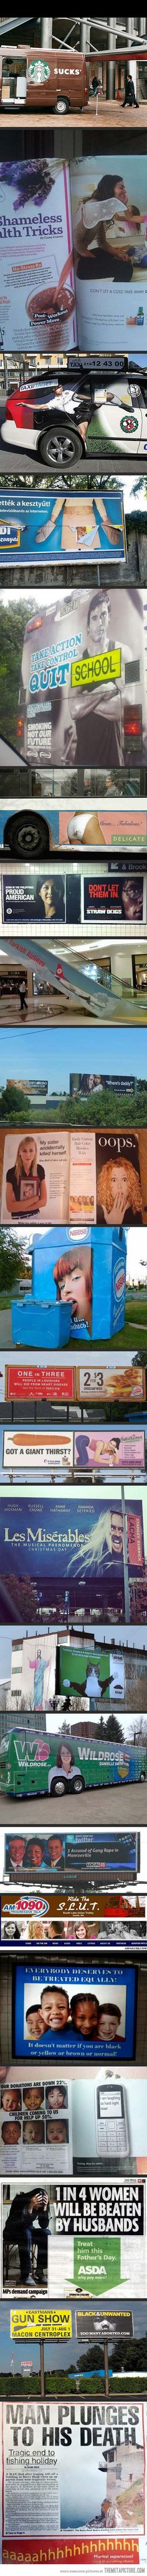 23 Most Unfortunate Advertising Placements… These are horrible. EPIC FAILS. I should not be laughing this hard.